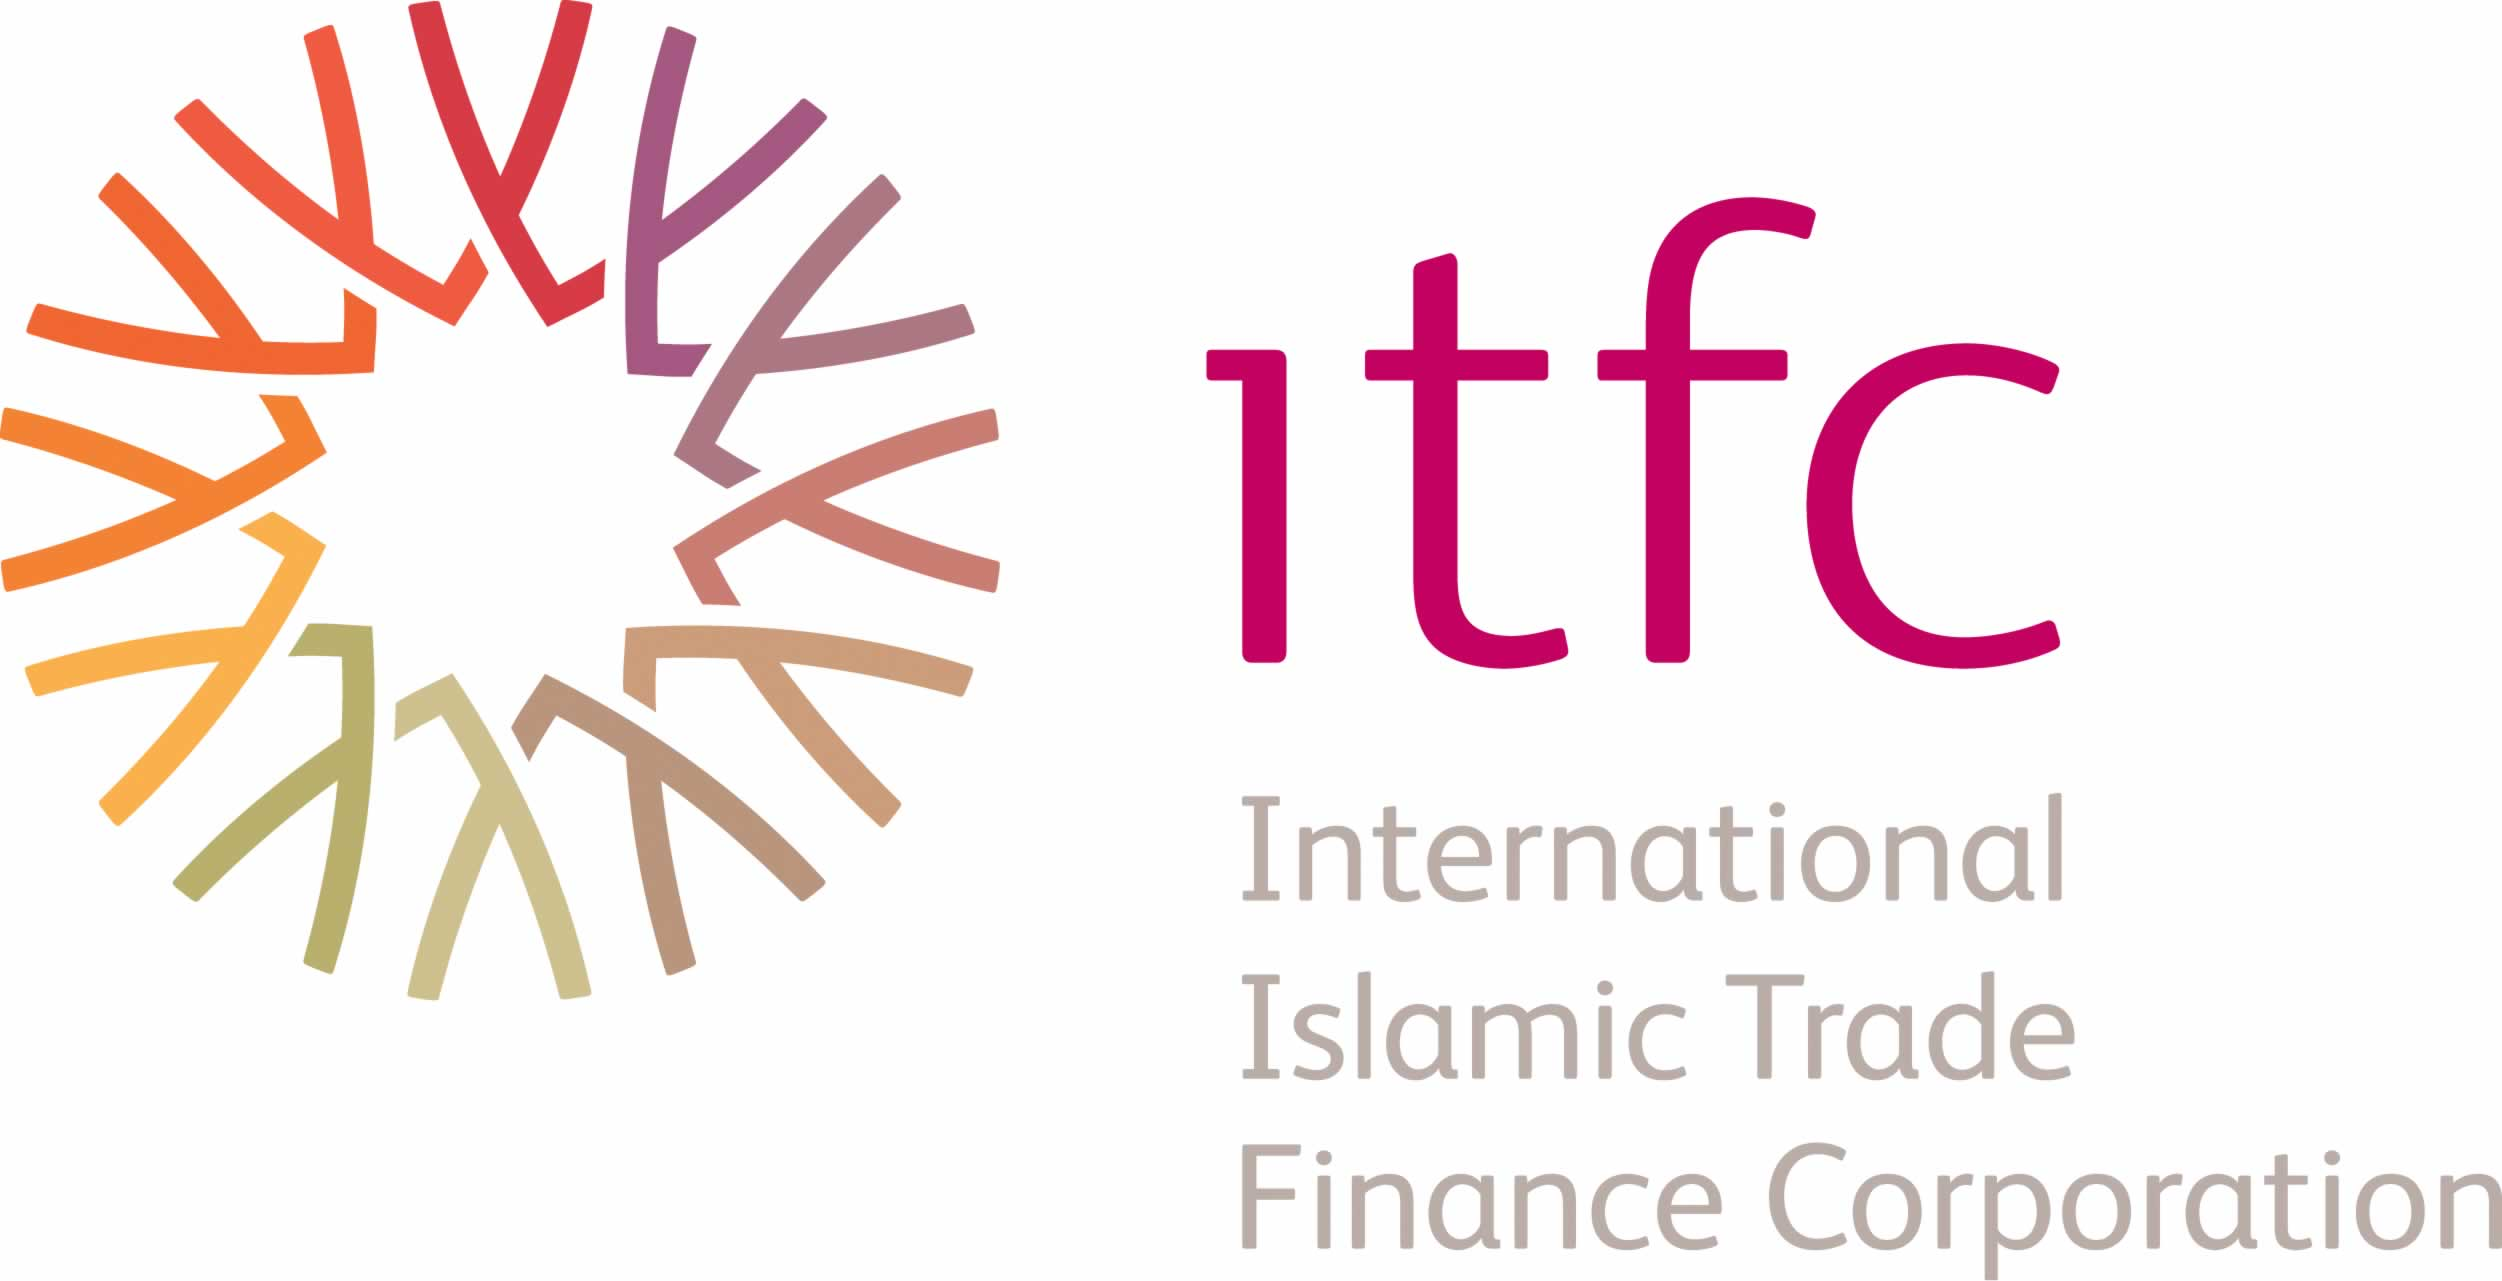 International Islamic Trade Finance Corporation (ITFC)